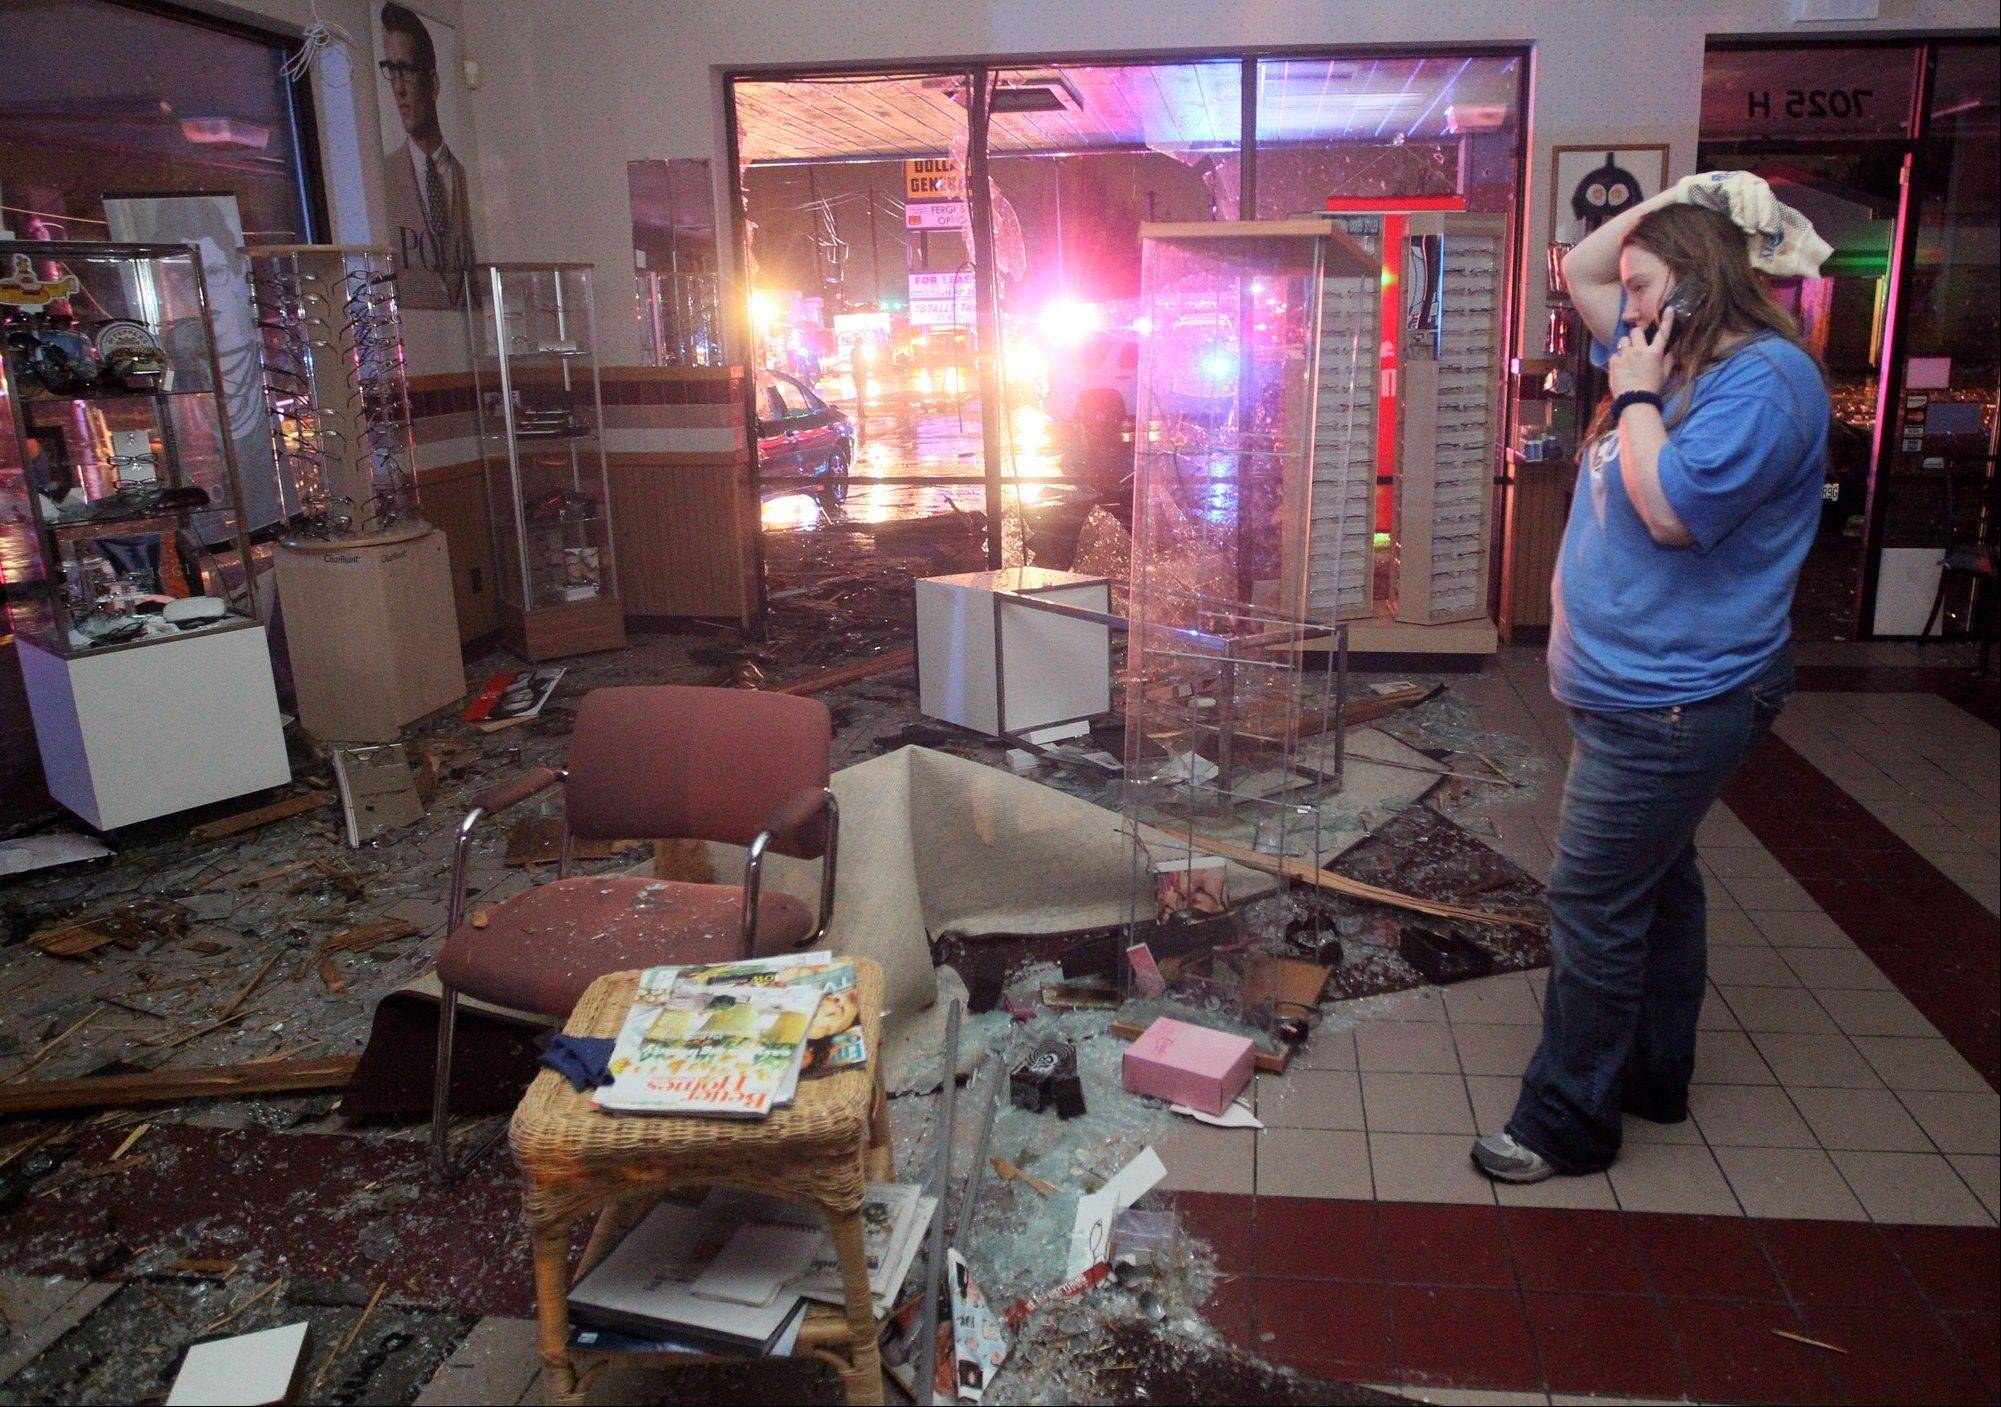 Kristin Little, manager of the Ferguson Optical shop in Hazelwood, talks with a friend on the phone as she describes the damage caused to her shop by a storm on Wednesday, April 10, 2013. Butch Dye, a hydrometeorological technician with the National Weather Service in St. Louis, Mo., said severe weather struck the suburb of Hazelwood. �We won�t be able to confirm whether it was a tornado until teams get out there tomorrow,� Dye said.